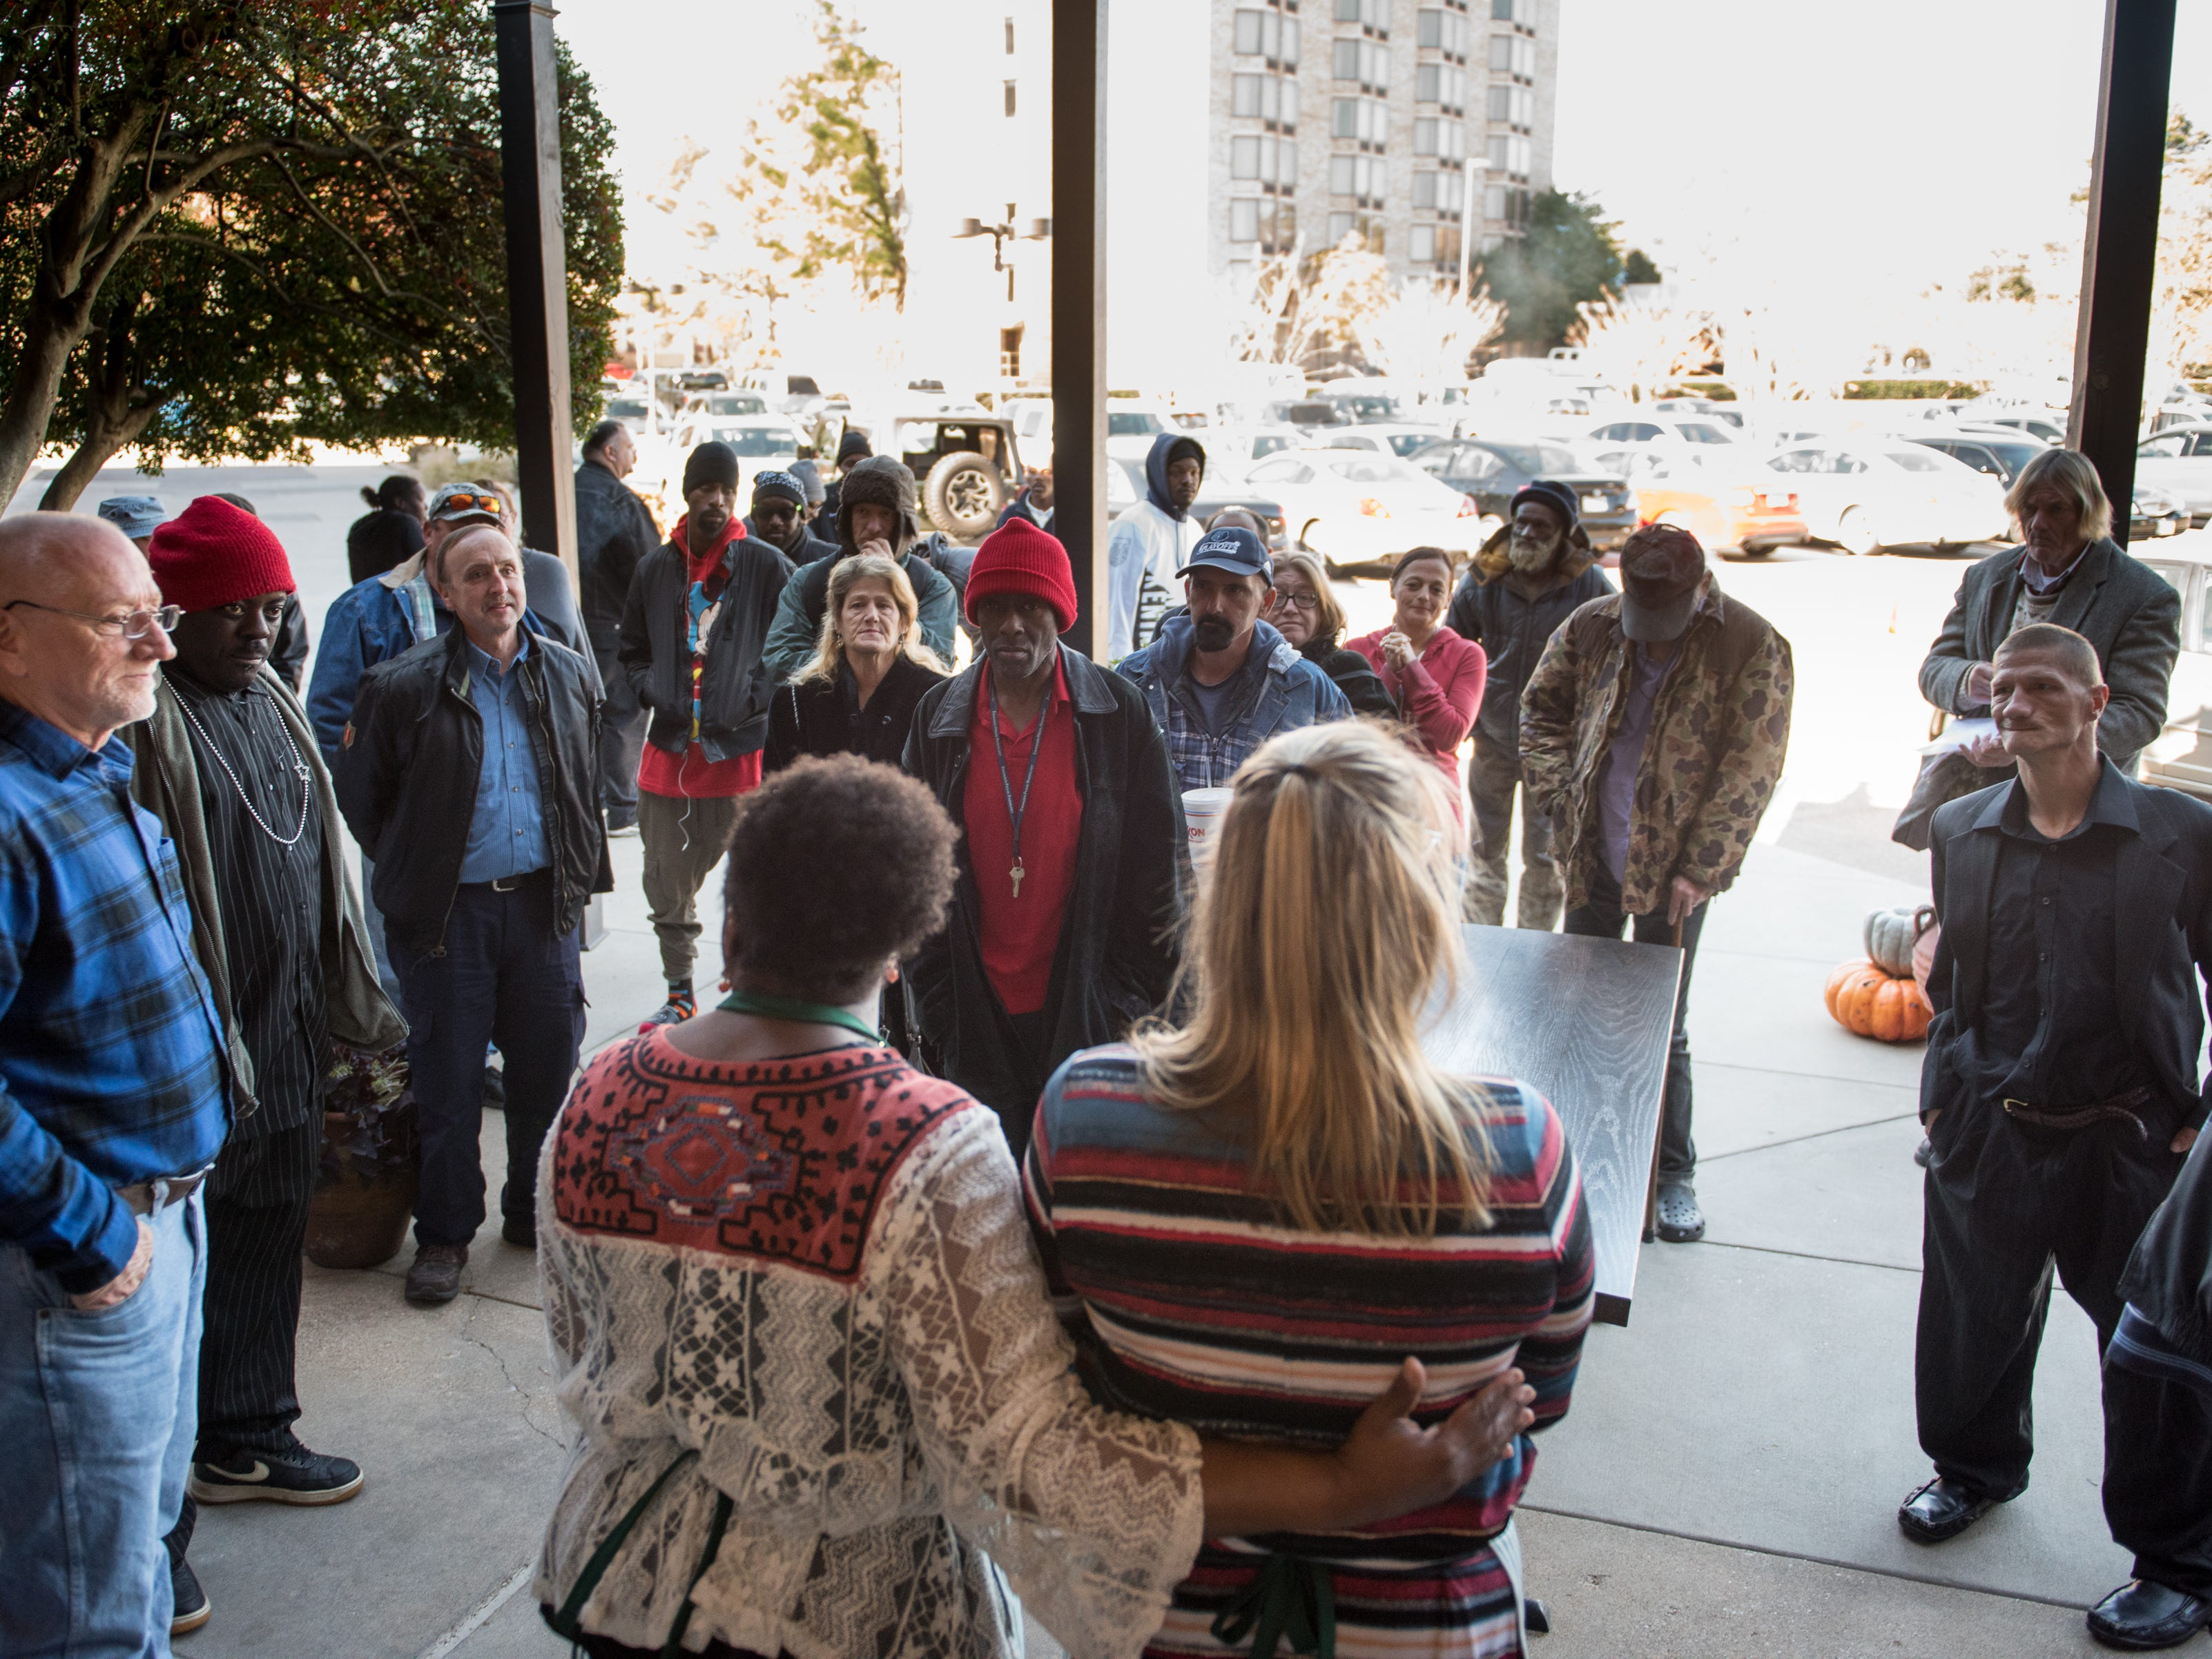 Napa Cafe owner Glenda Hastings, on the right, welcomes her guests at her annual Donna's Table Thanksgiving Feast. Since 2015, she has been opening her restaurant on Thanksgiving Day to feed the homeless.